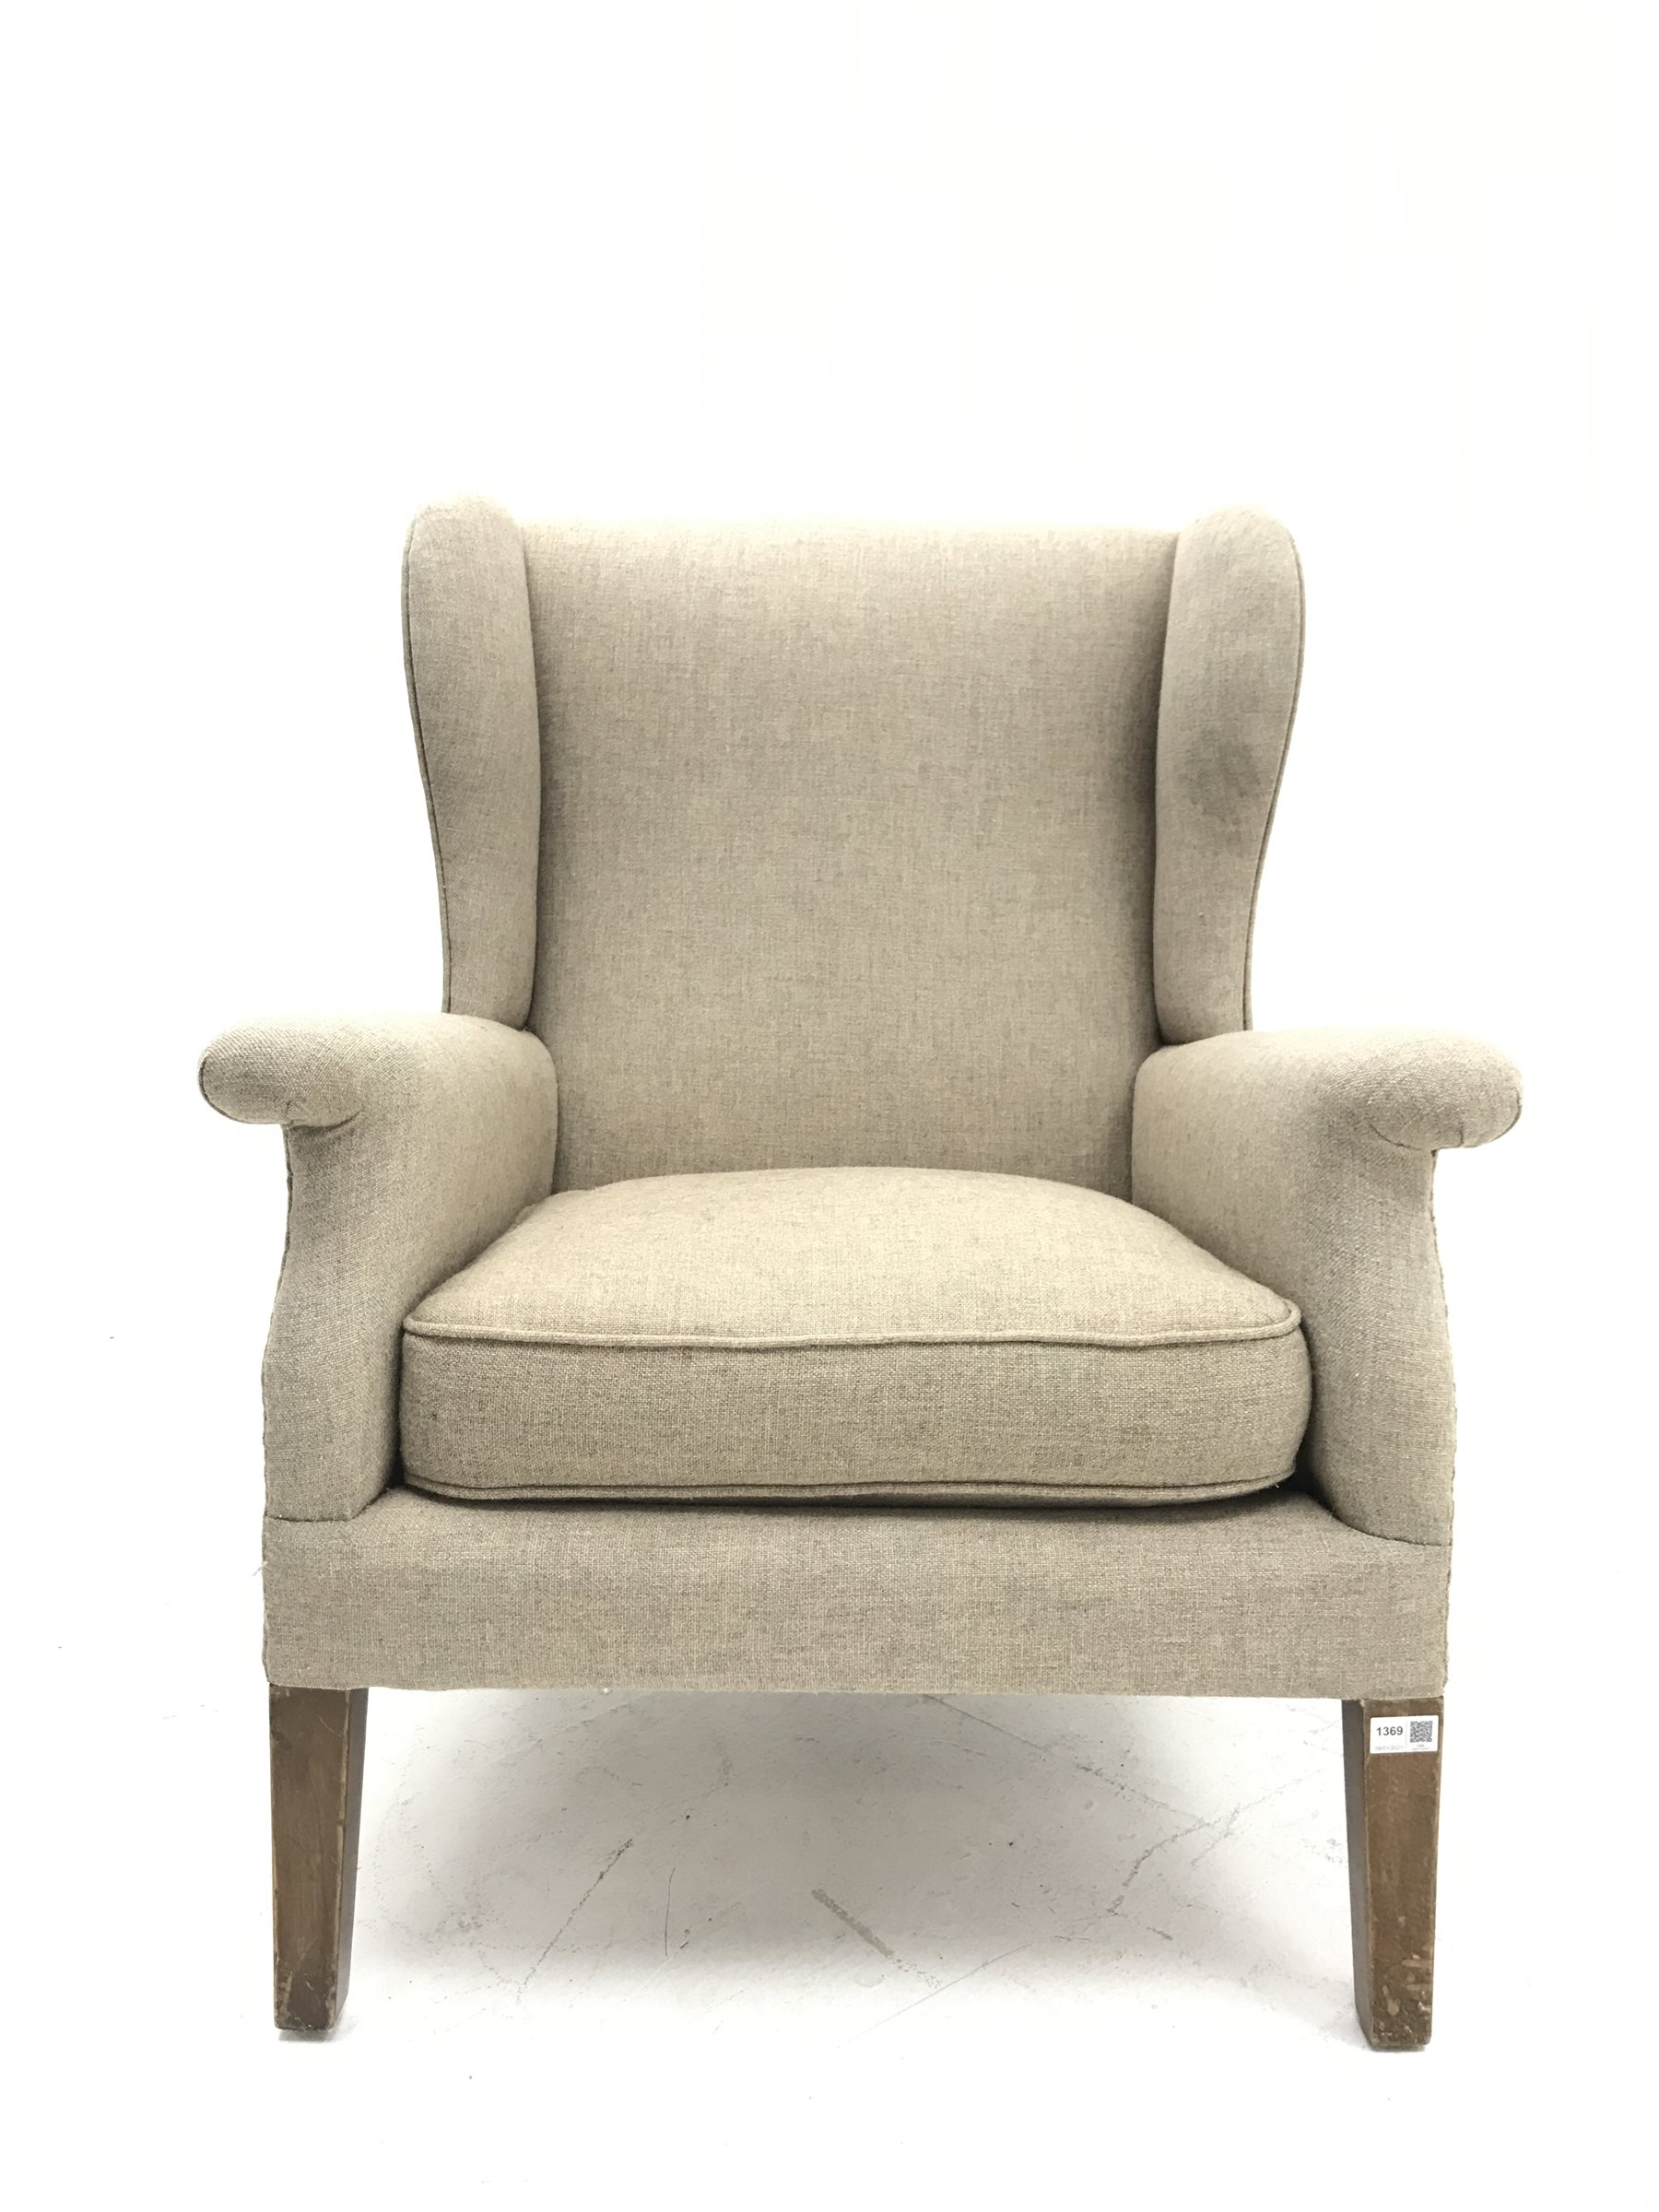 Vintage Parker Knoll wing back armchair, upholstered in natural fabric, W75cm, H97cm - Image 2 of 3